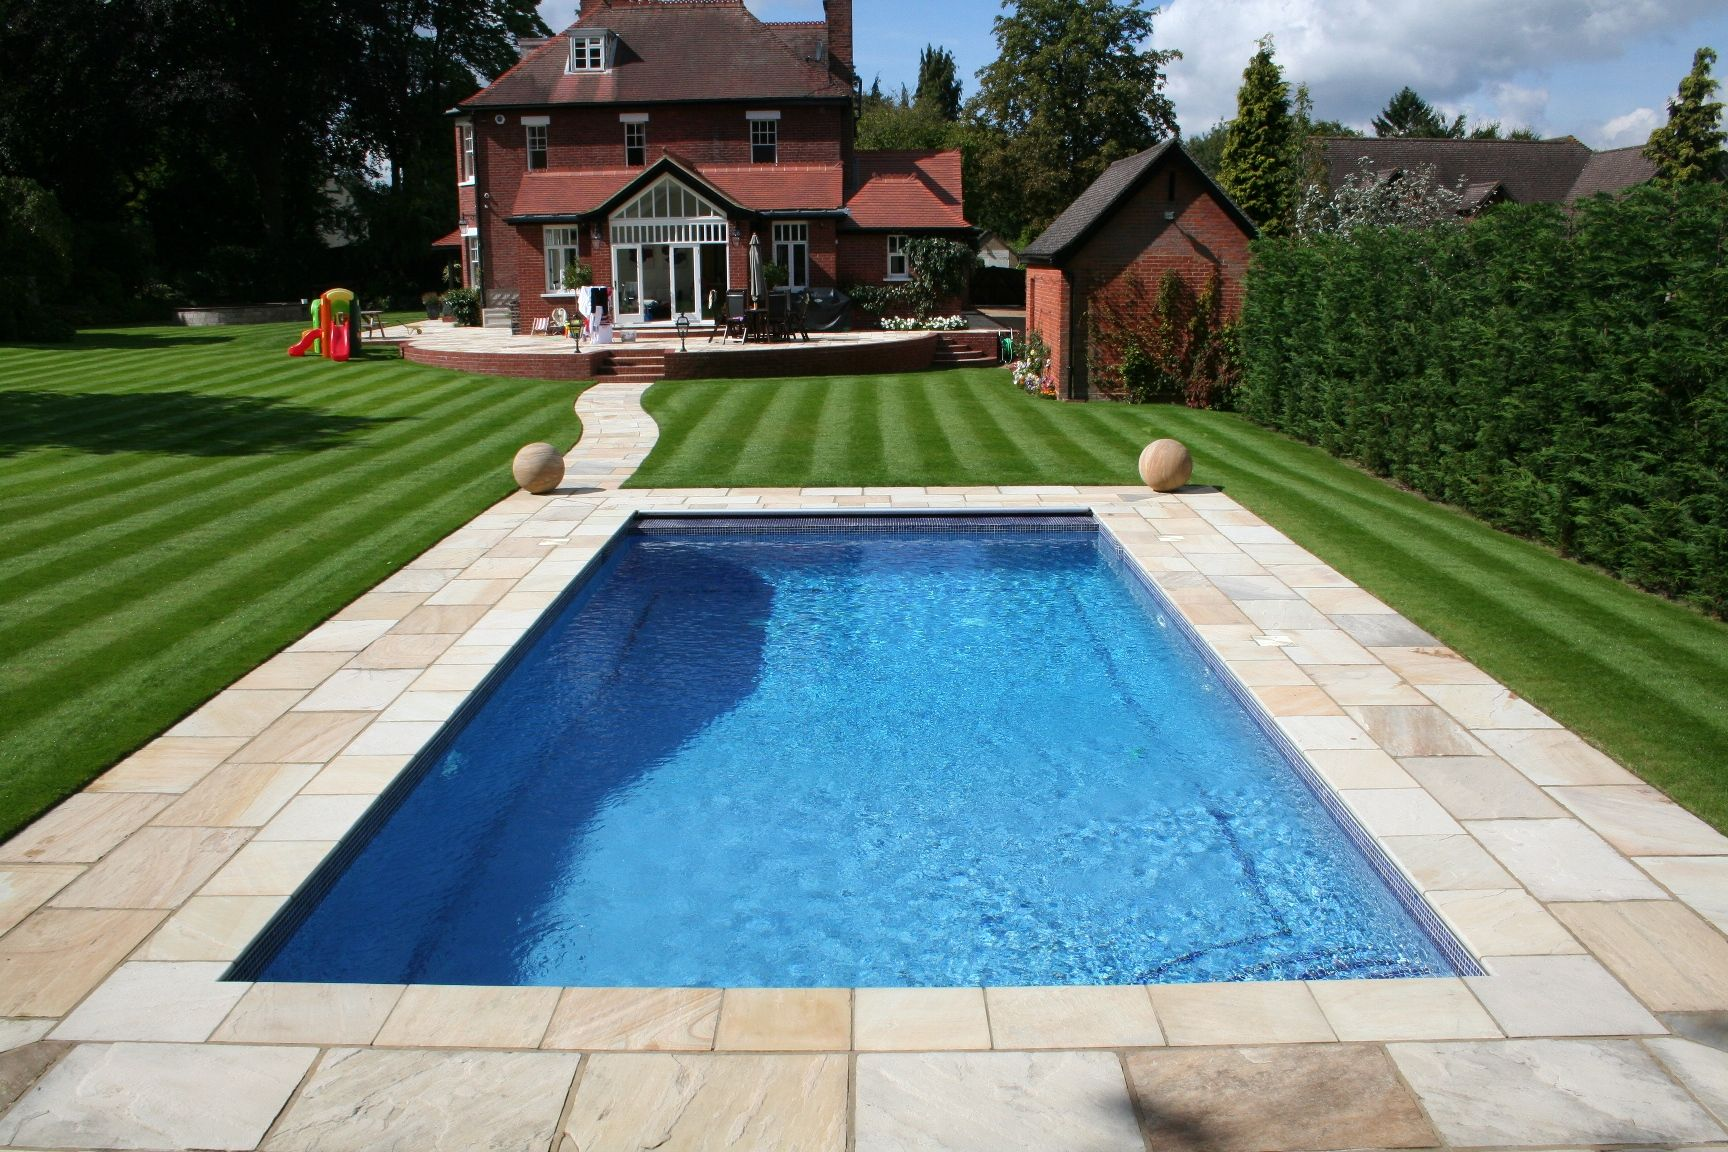 Rectangular Inground Pool Designs landscaping ideas for inground swimming pools | pool design ideas